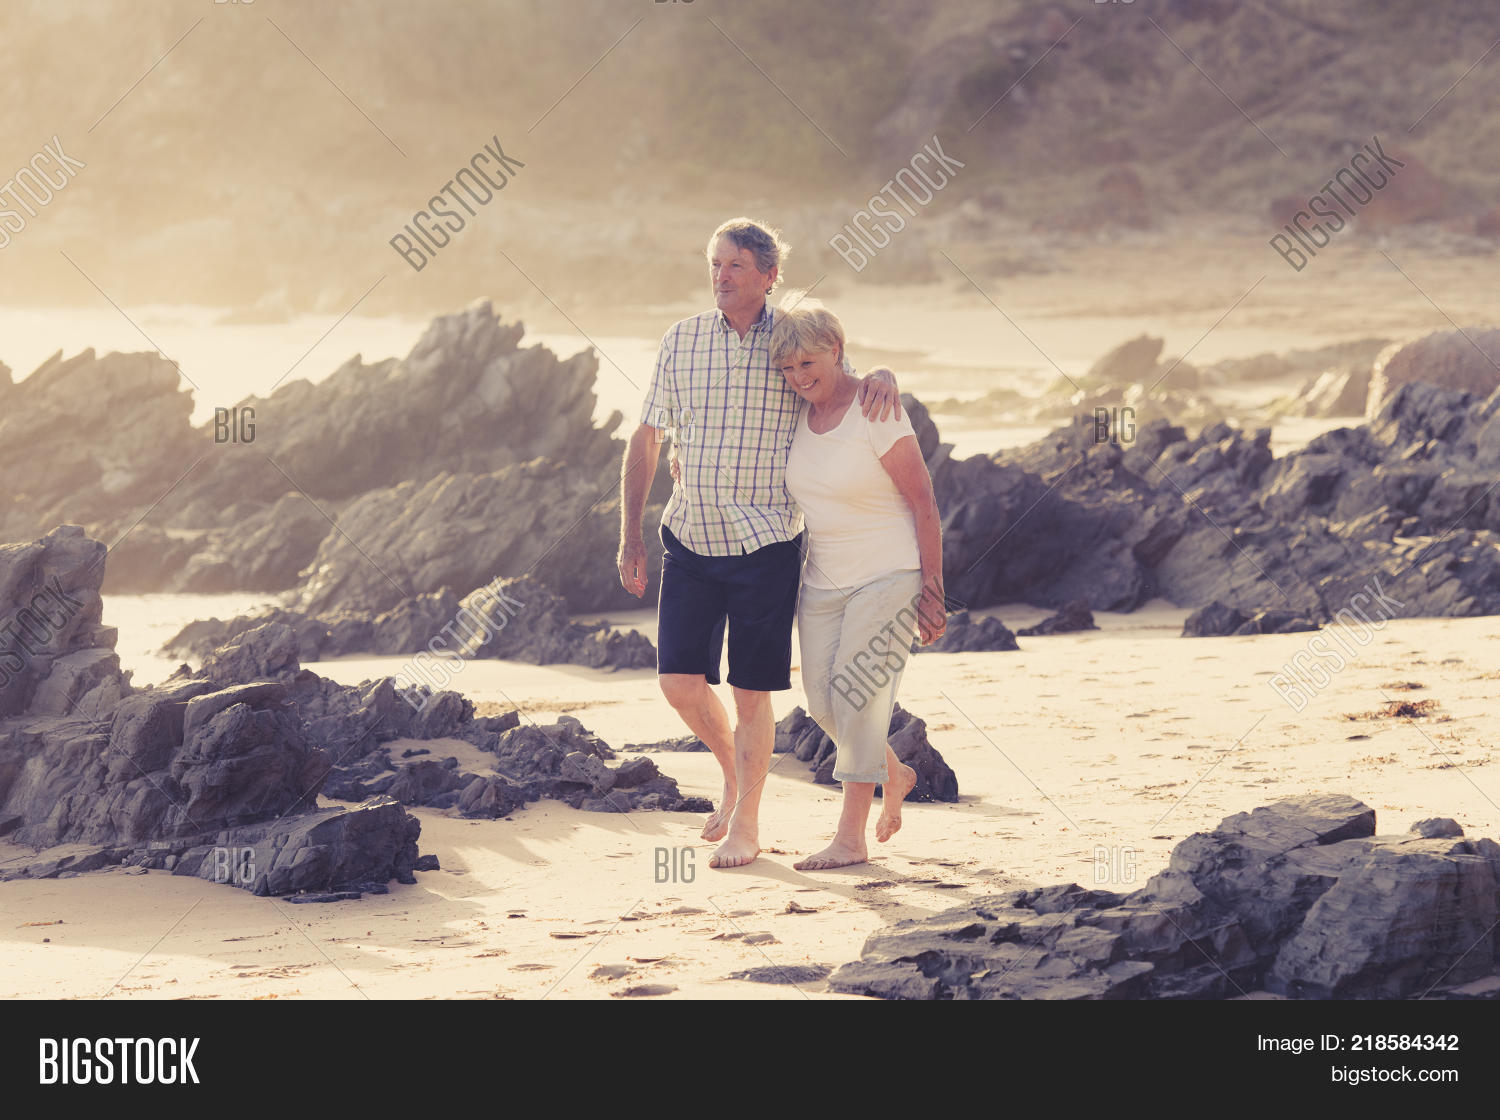 60s,70s,Caucasian,Summer,active,aged,aging,beach,couple,elderly,enjoying,female,hands,happy,healthy,holding,holiday,husband,joy,life,lifestyle,love,male,man,married,mature,natural,old,outdoors,playful,relax,relaxed,retired,retirement,romance,romantic,sea,senior,shore,shoreline,smile,sweet,together,travel,vacation,walk,white,wife,woman